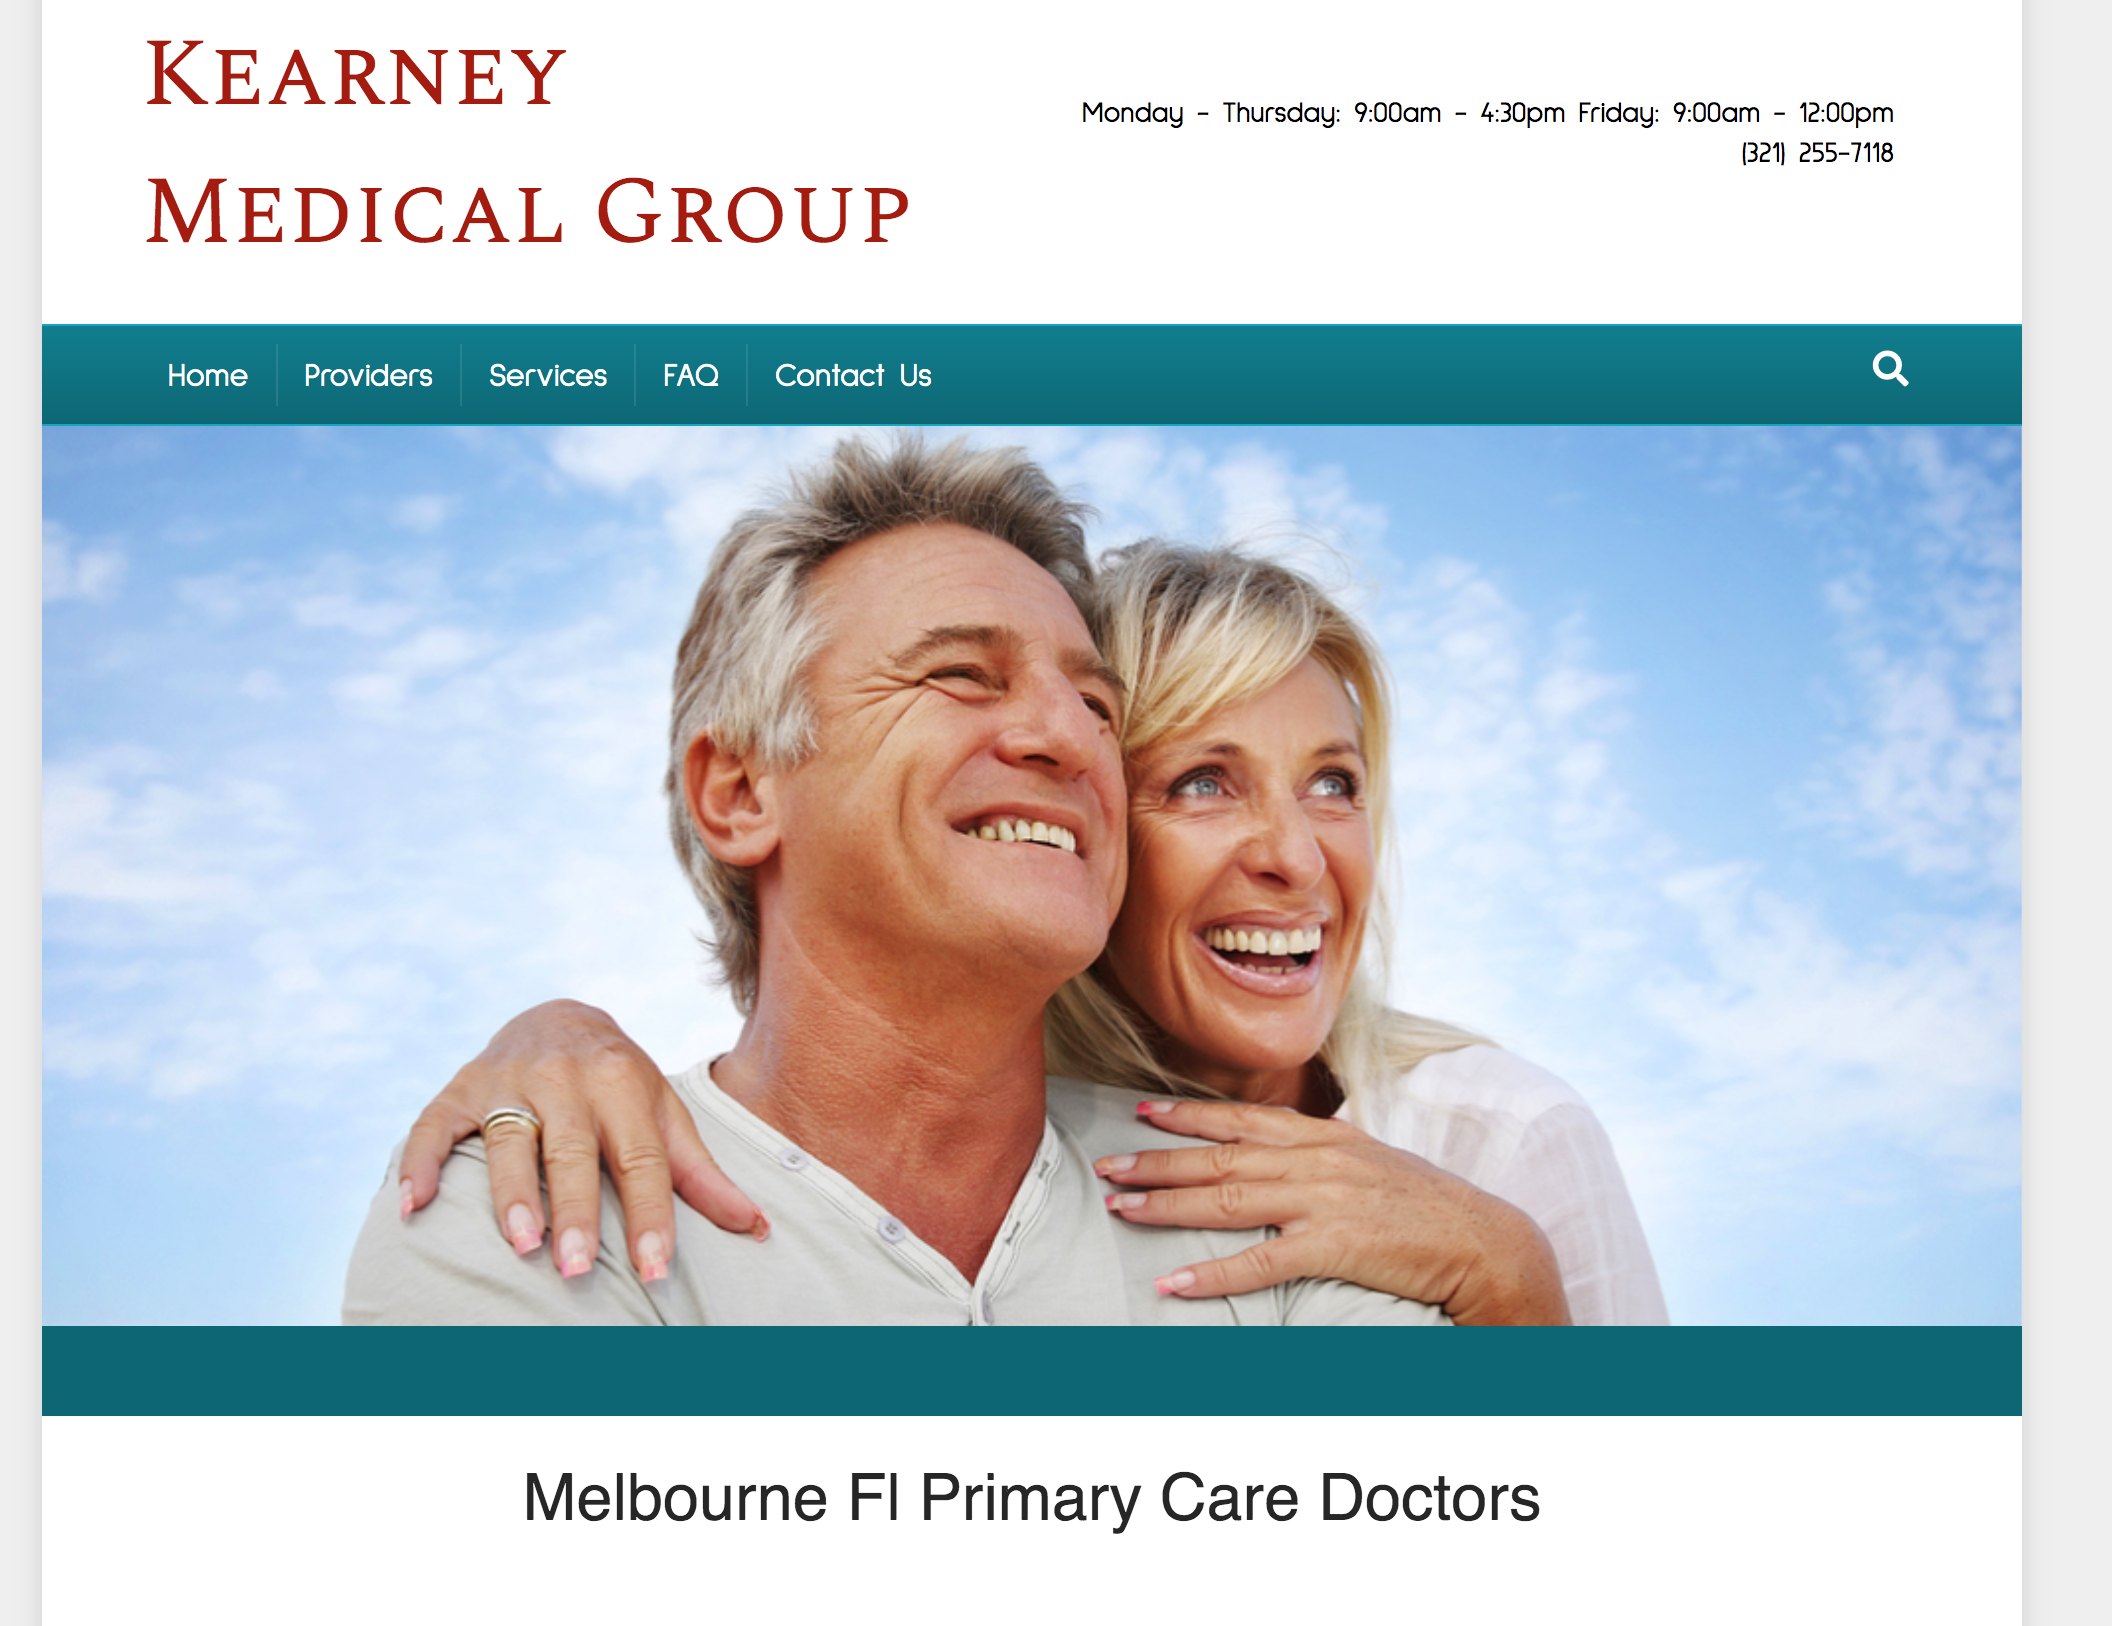 Kearney Medical Group Home page text with middle -aged couple smiling